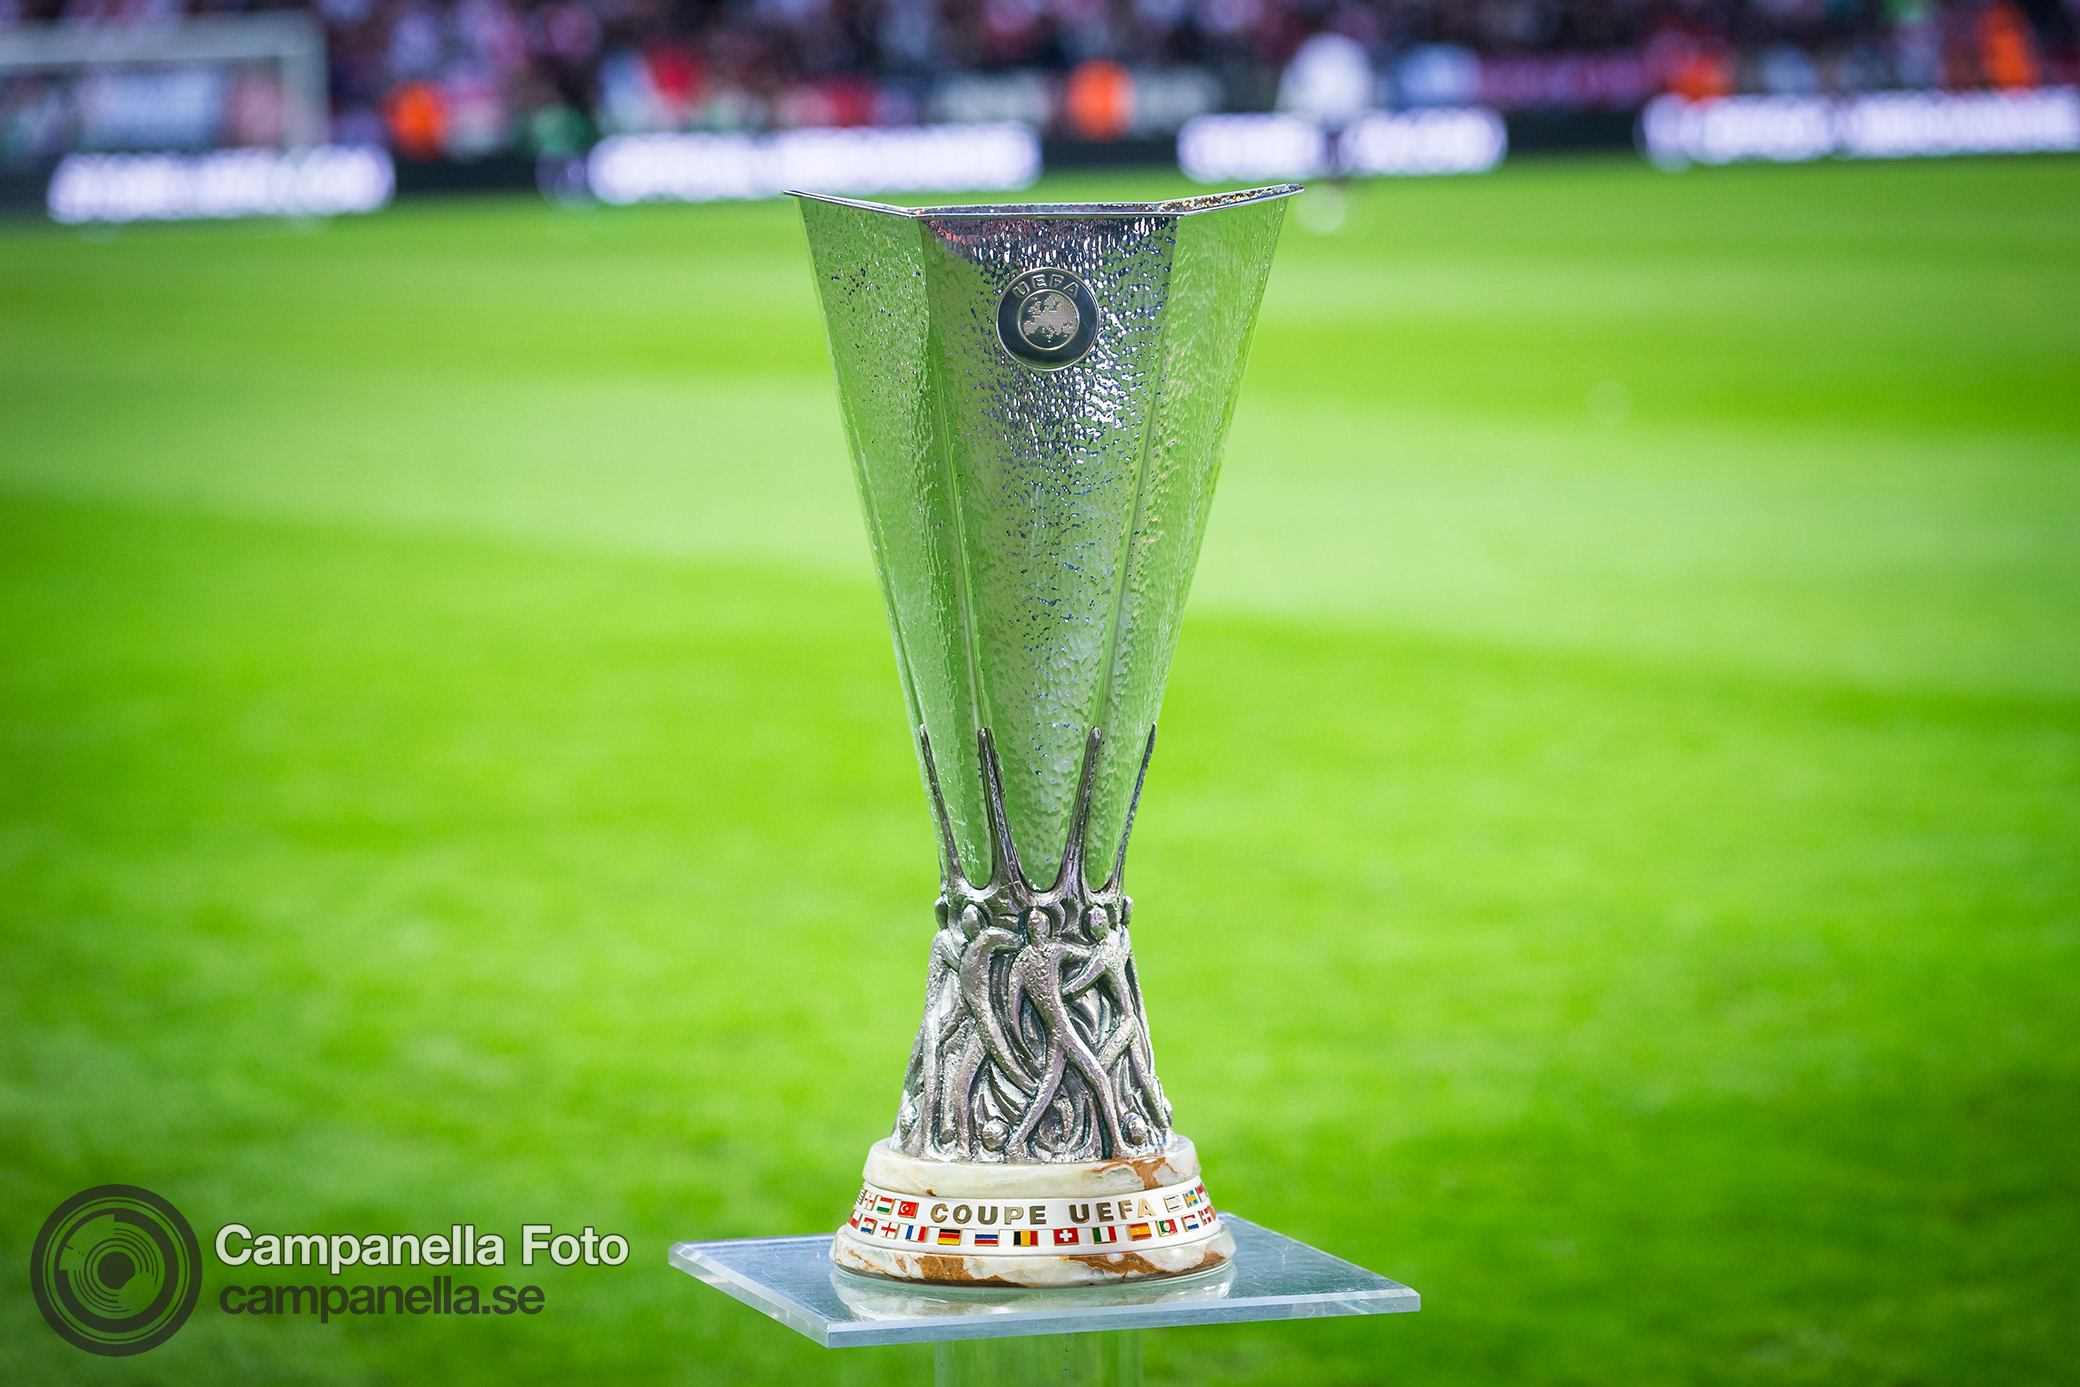 Europa League Final comes to Stockholm - Michael Campanella Photography